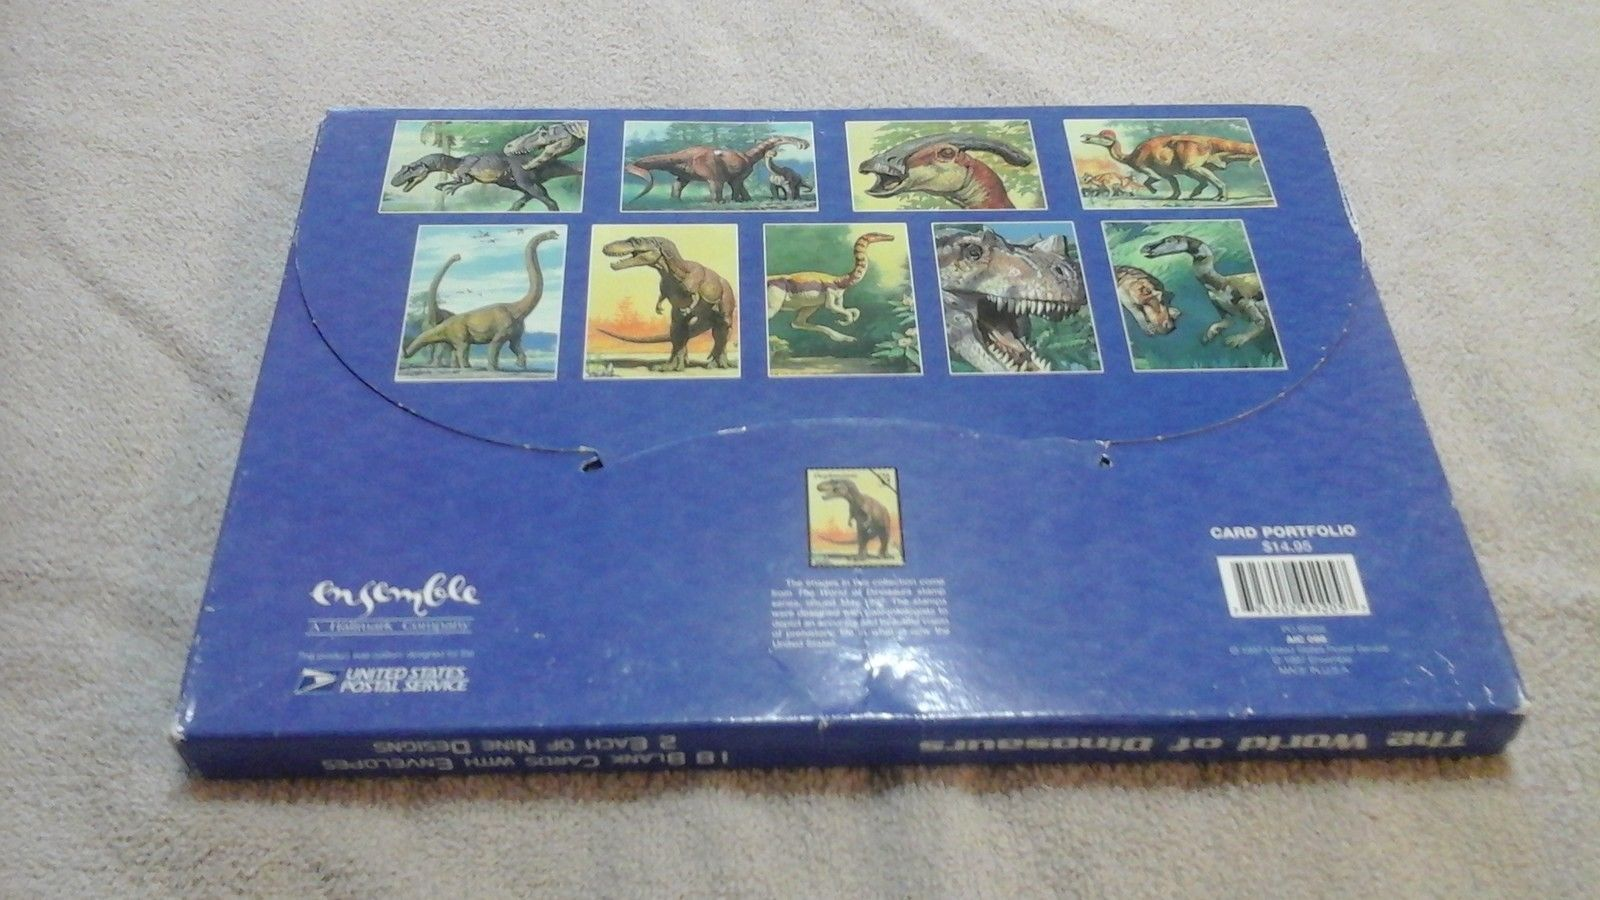 1 - U.S. POSTAL SERVICE 18 CARDS+ENVELOPES WORLD OF DINOSAURS 2 ea.HAR 9 DESIGNS